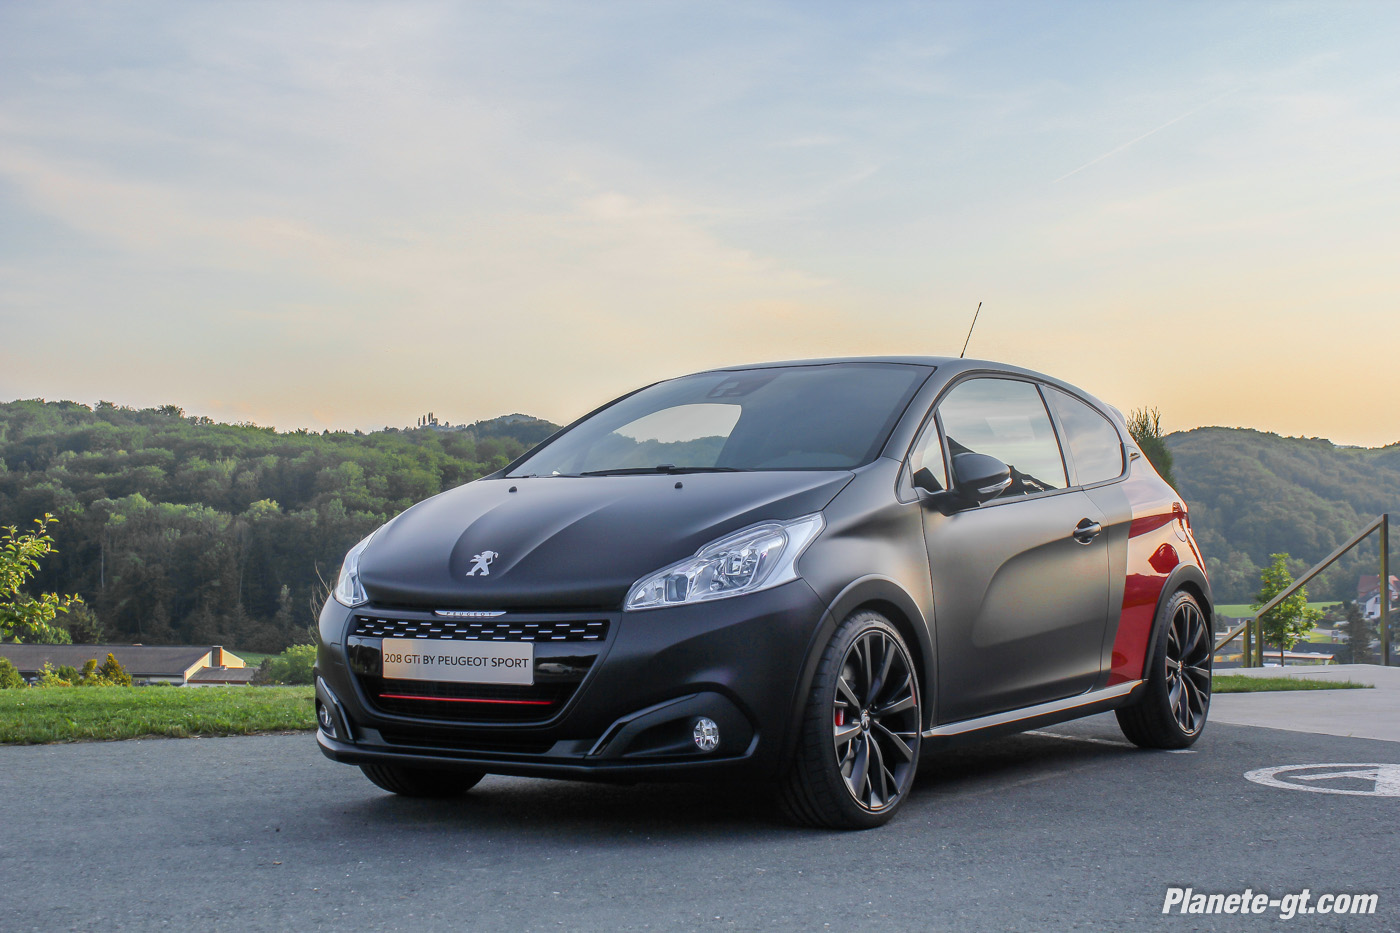 essai vid o nouvelle peugeot 208 208 gtline plan te. Black Bedroom Furniture Sets. Home Design Ideas